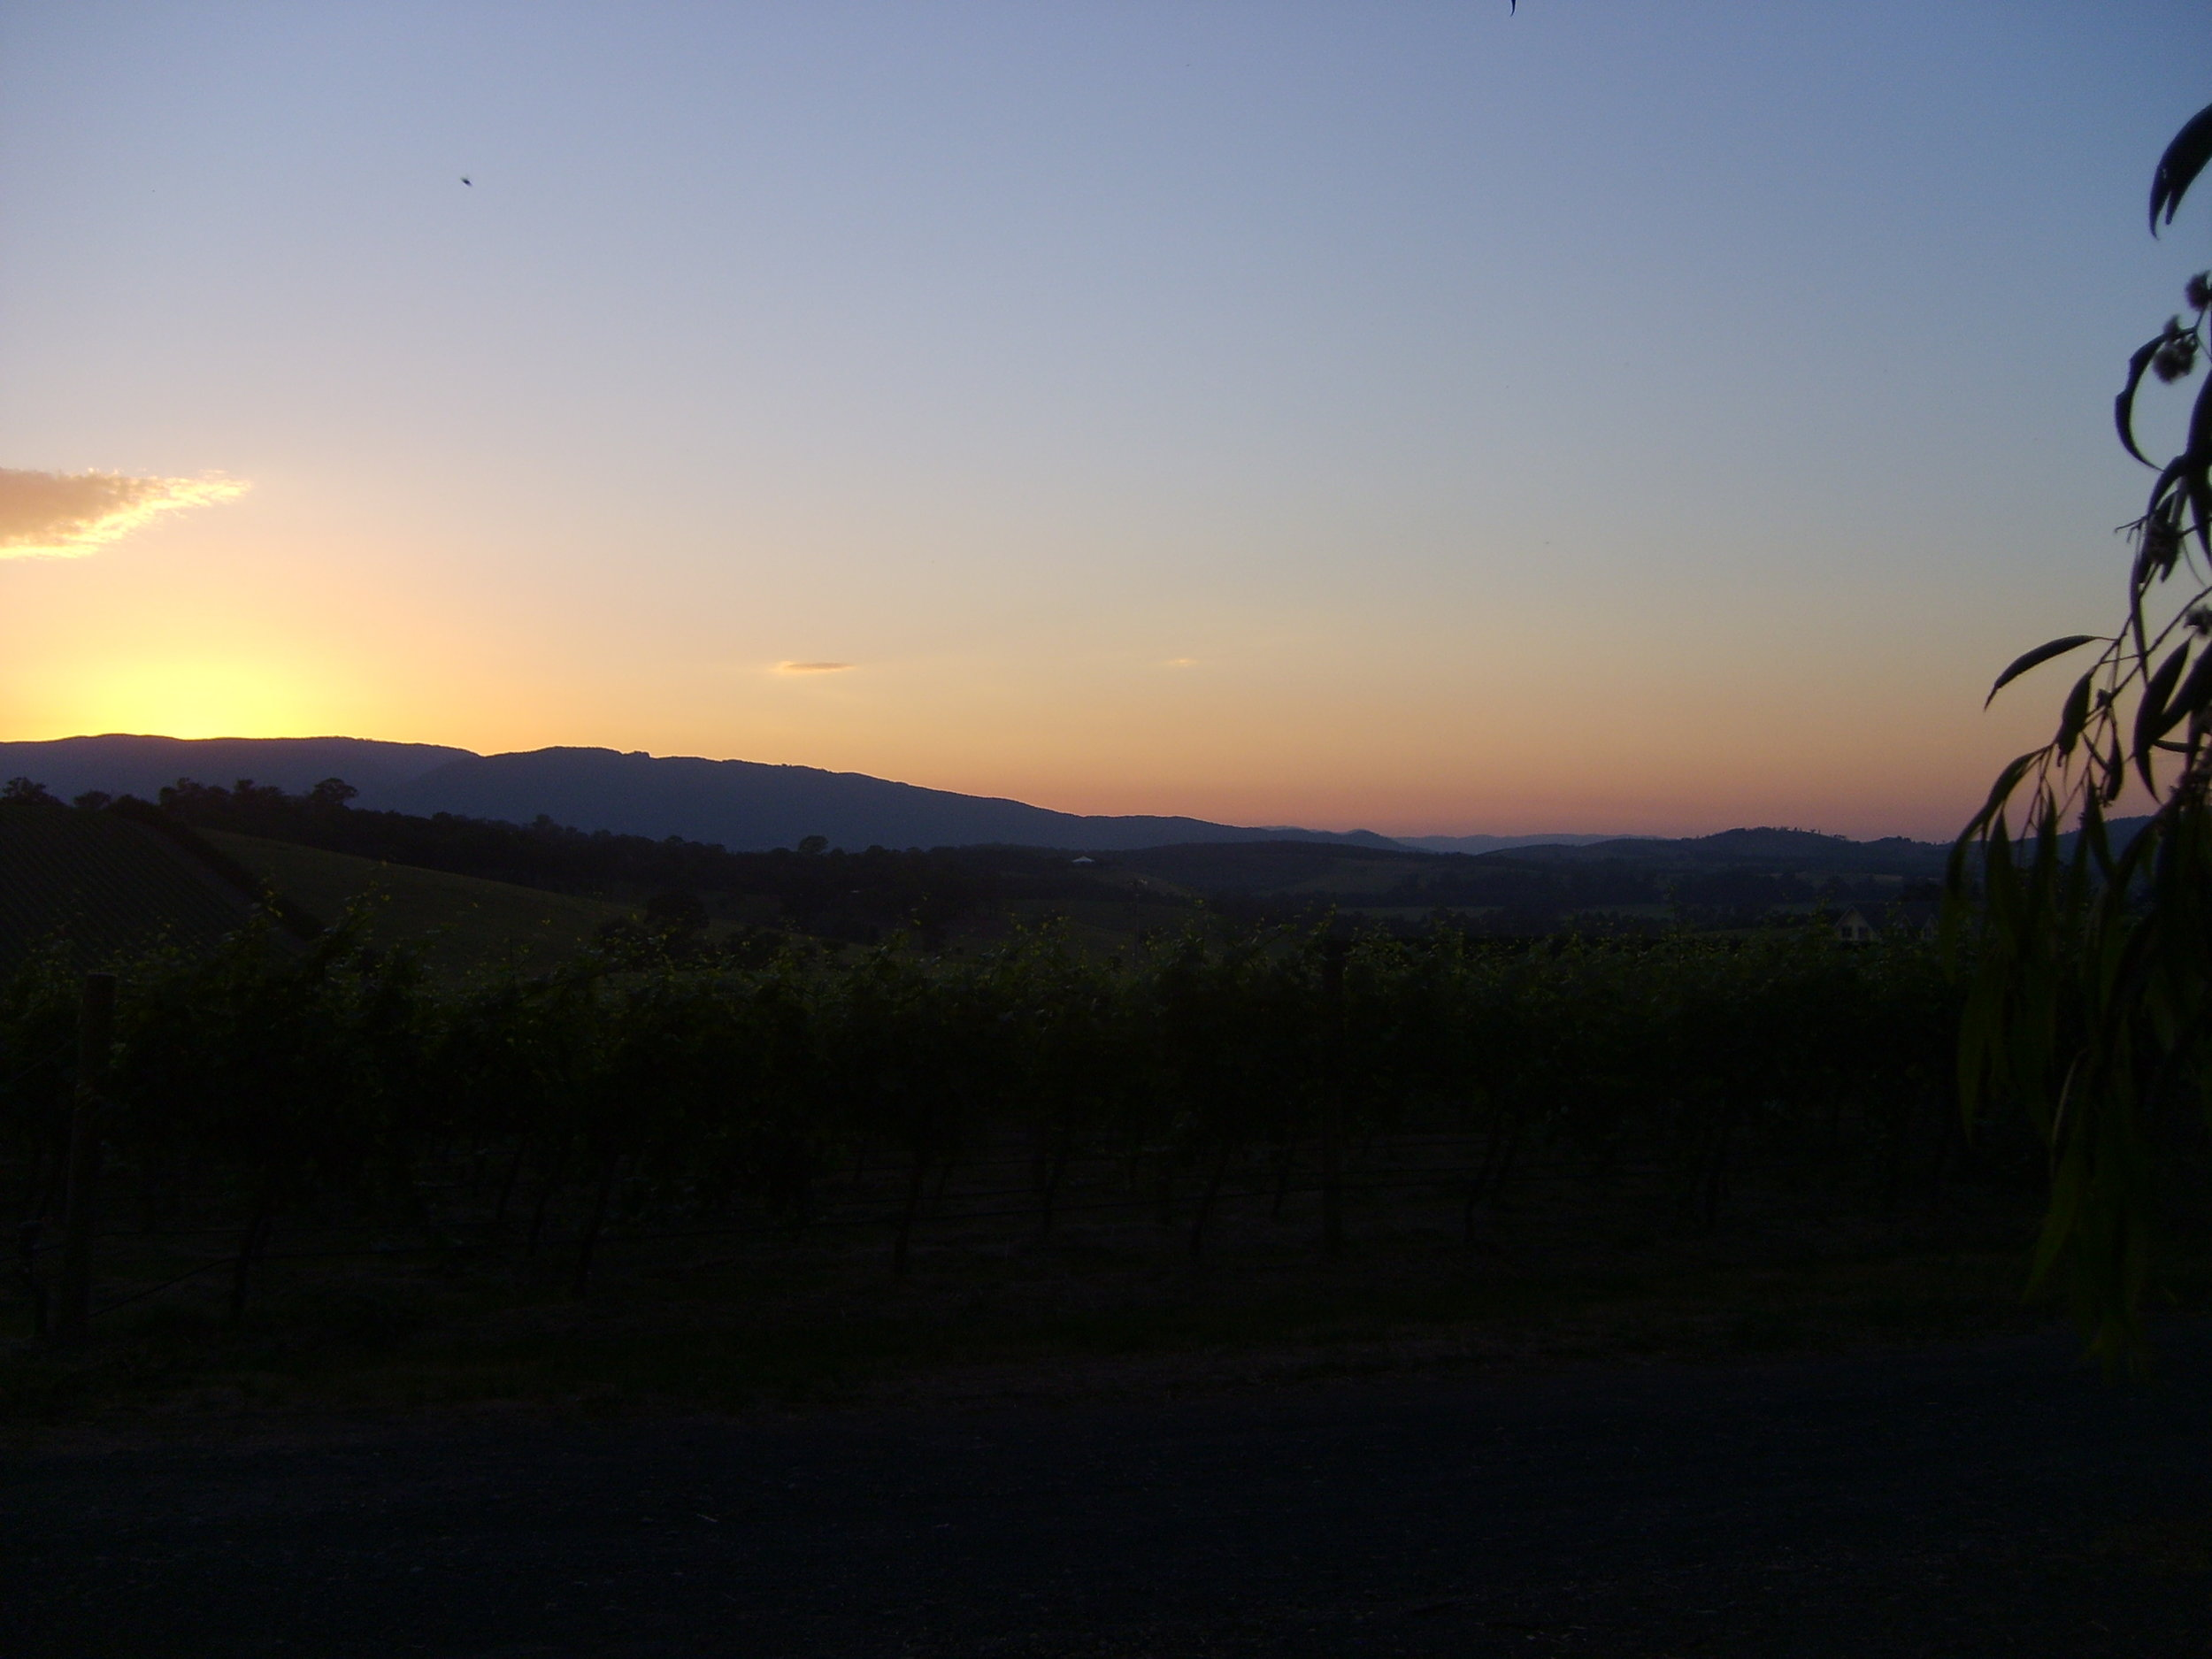 Dawn above the vineyards of Yarra Valley, Victoria.